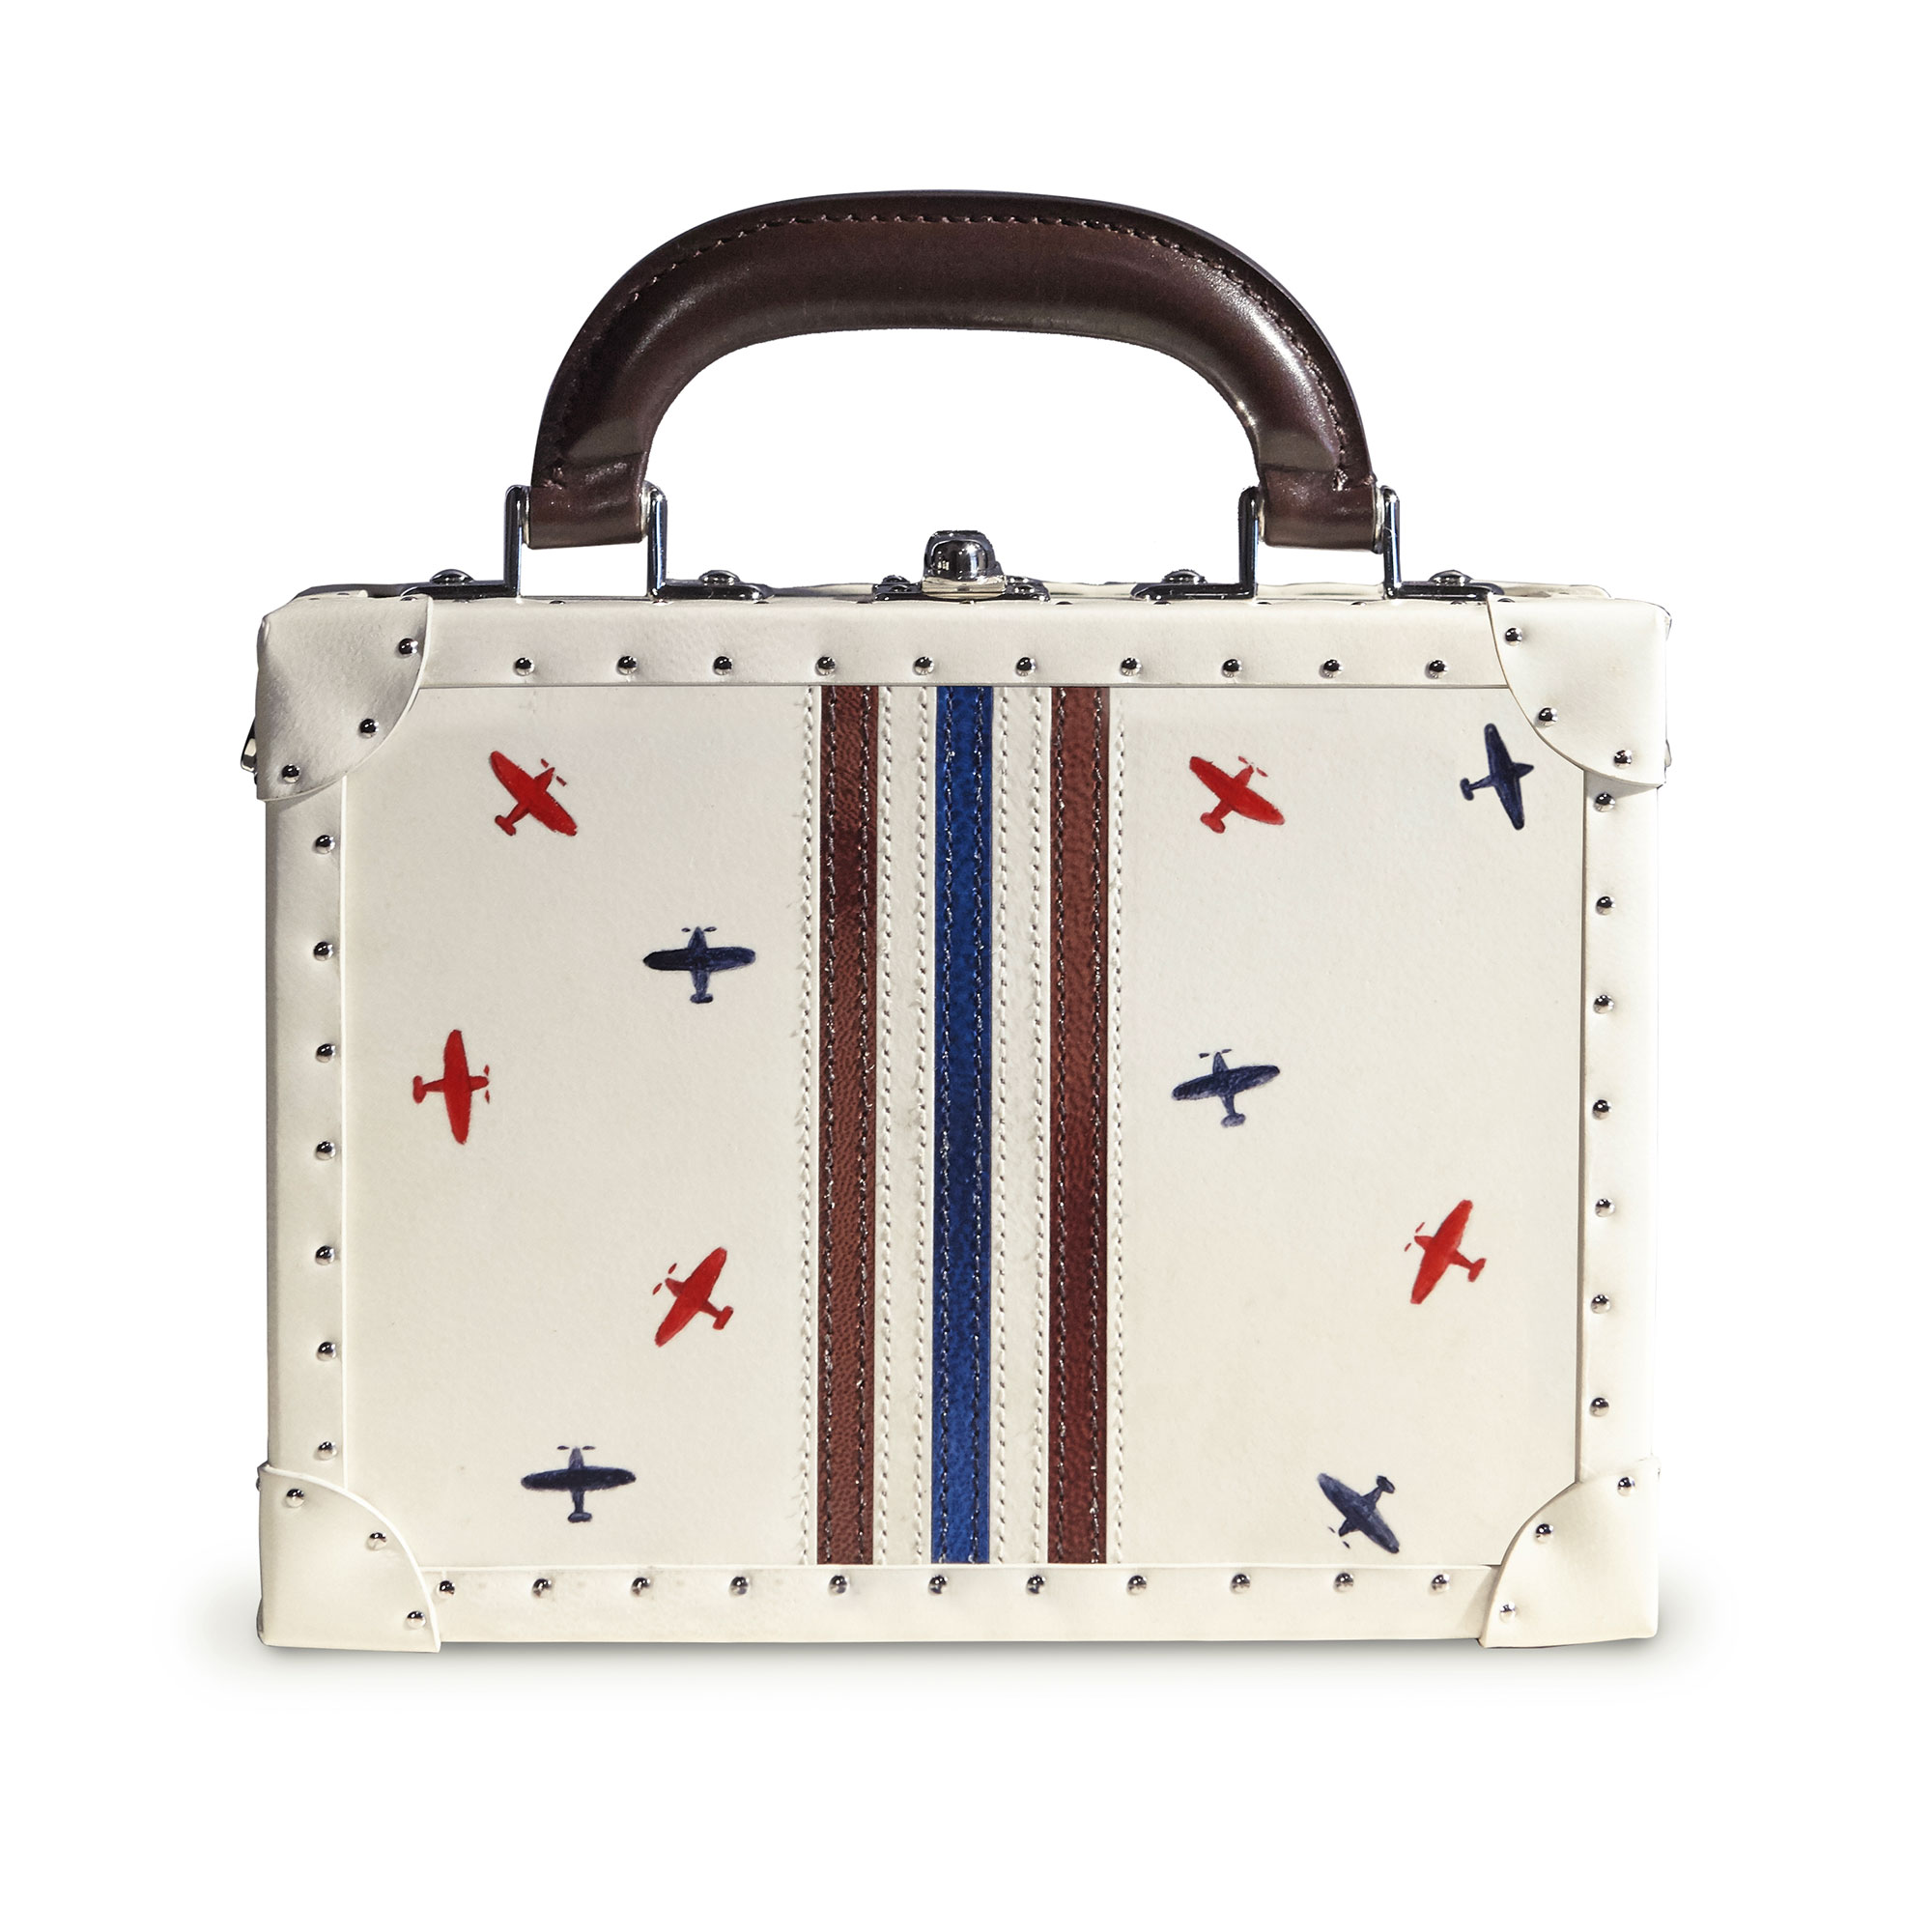 Navy and brown stripes with hand-painted airplanes french calf parchment Mini Squared Bertoncina bag by Bertoni 1949 01